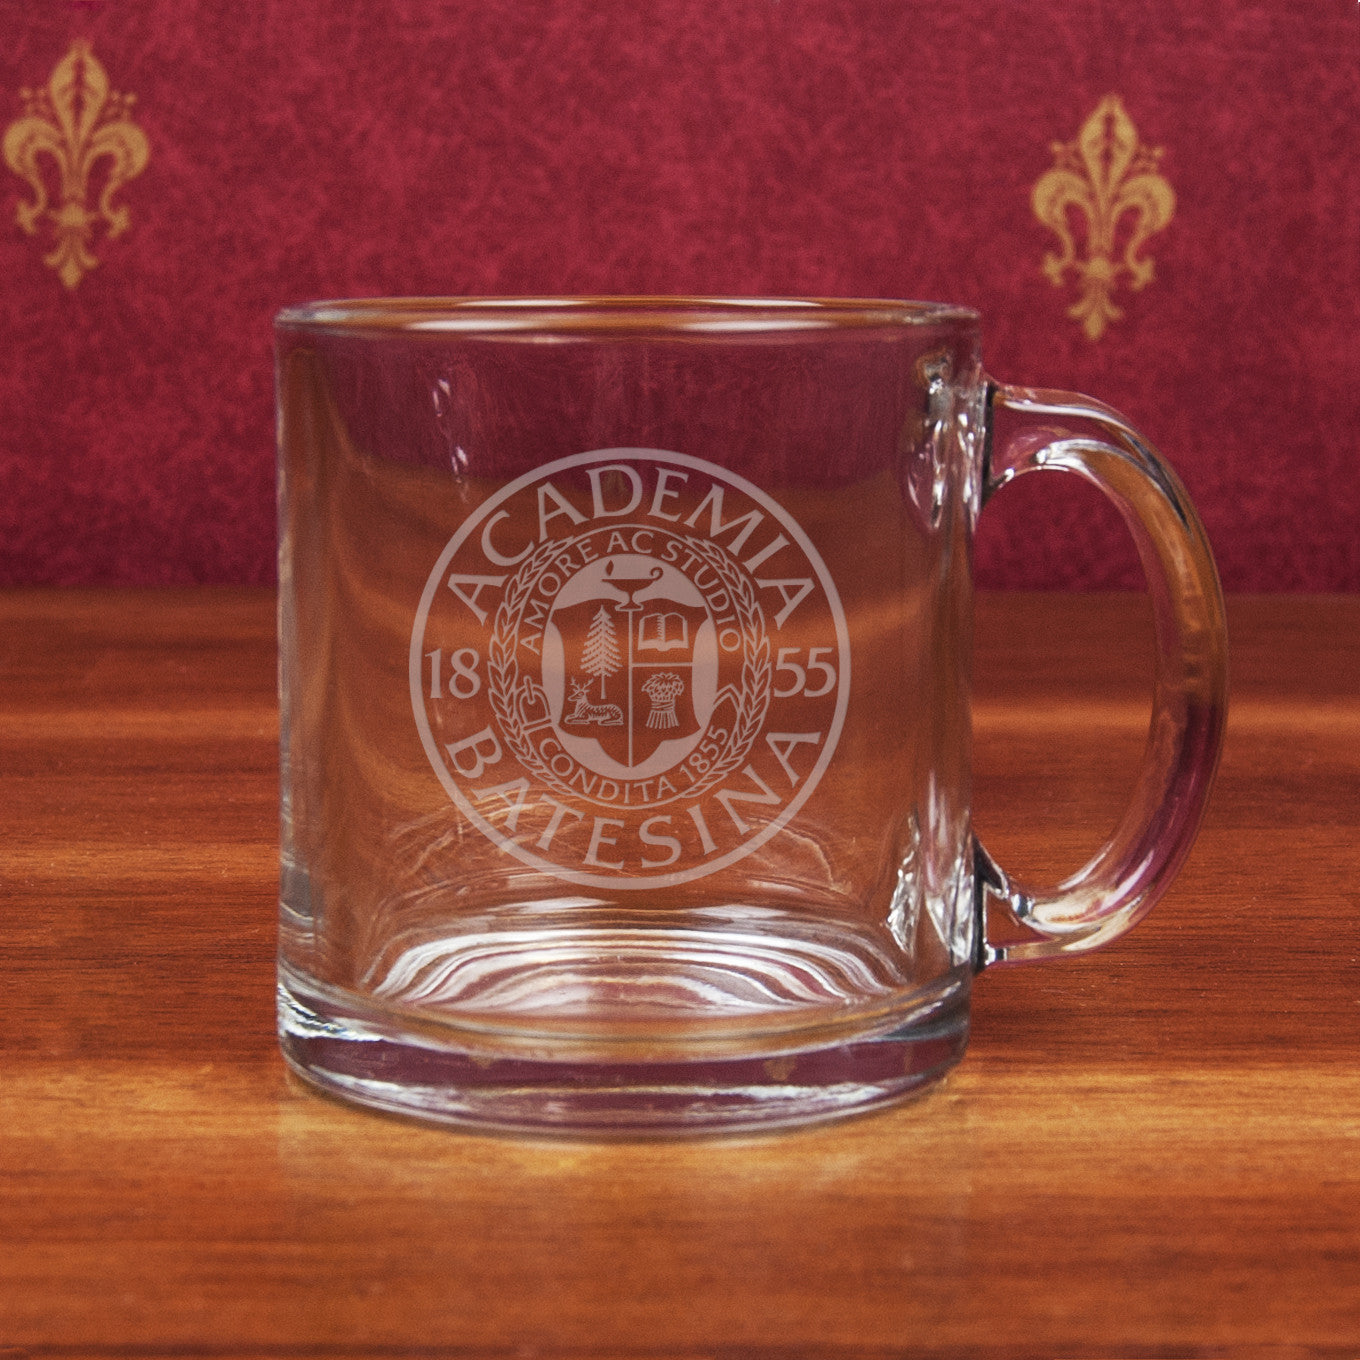 14oz Clear Glass Mug - Commencement, Gifts, Glassware